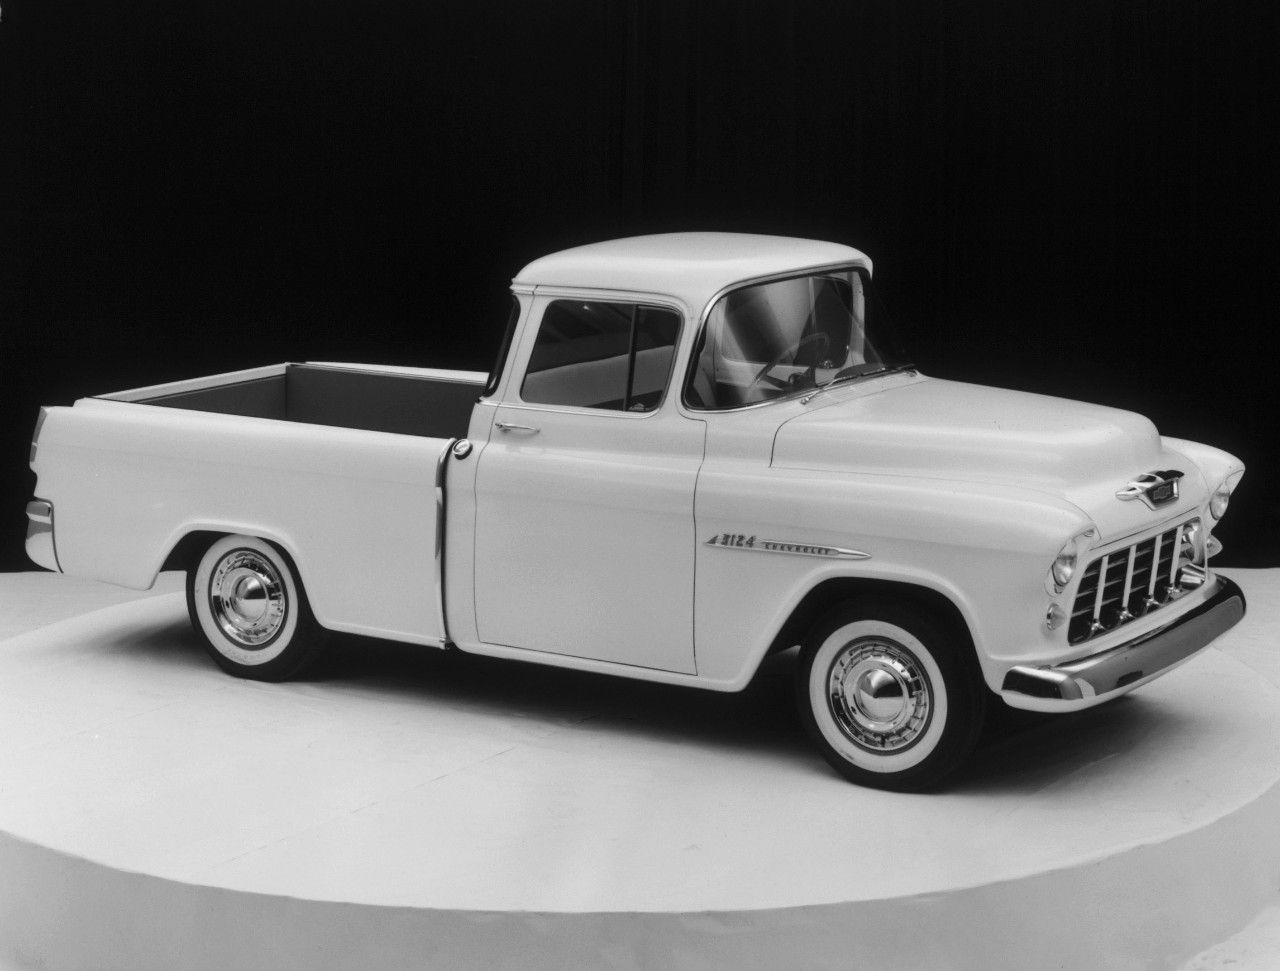 Chevy Trucks History 1918 1959 1957 Cameo Pickup Truck 1955 Carrier